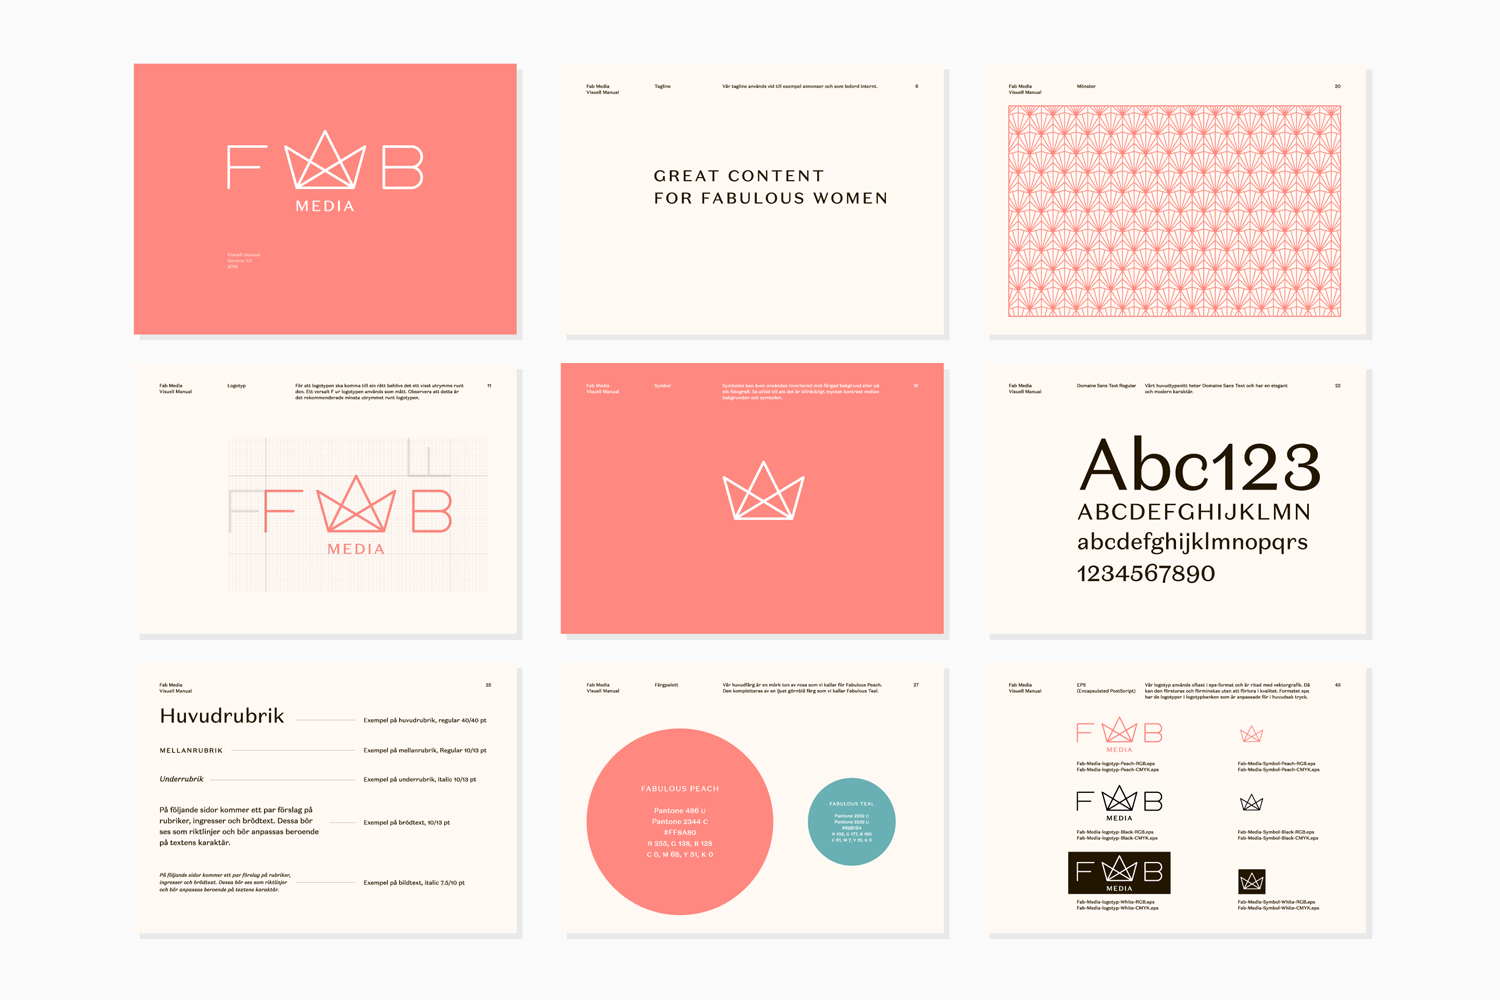 Brand guidelines by Stockholm-based Bedow for Swedish media company Fab Media